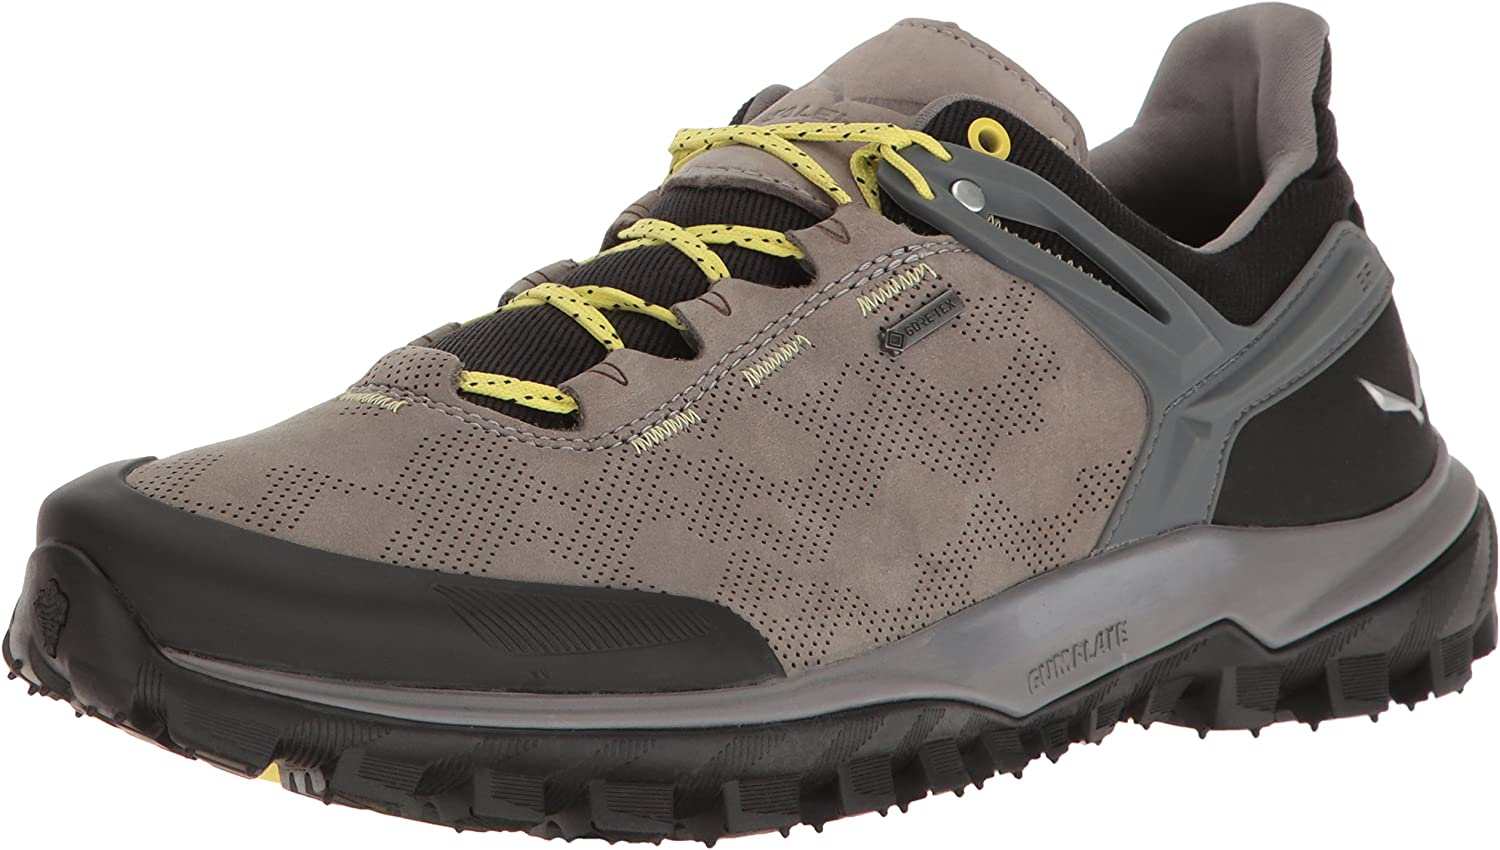 Merrell Chameleon 7 Mid Waterproof Boot – Women s Ice, 9.0